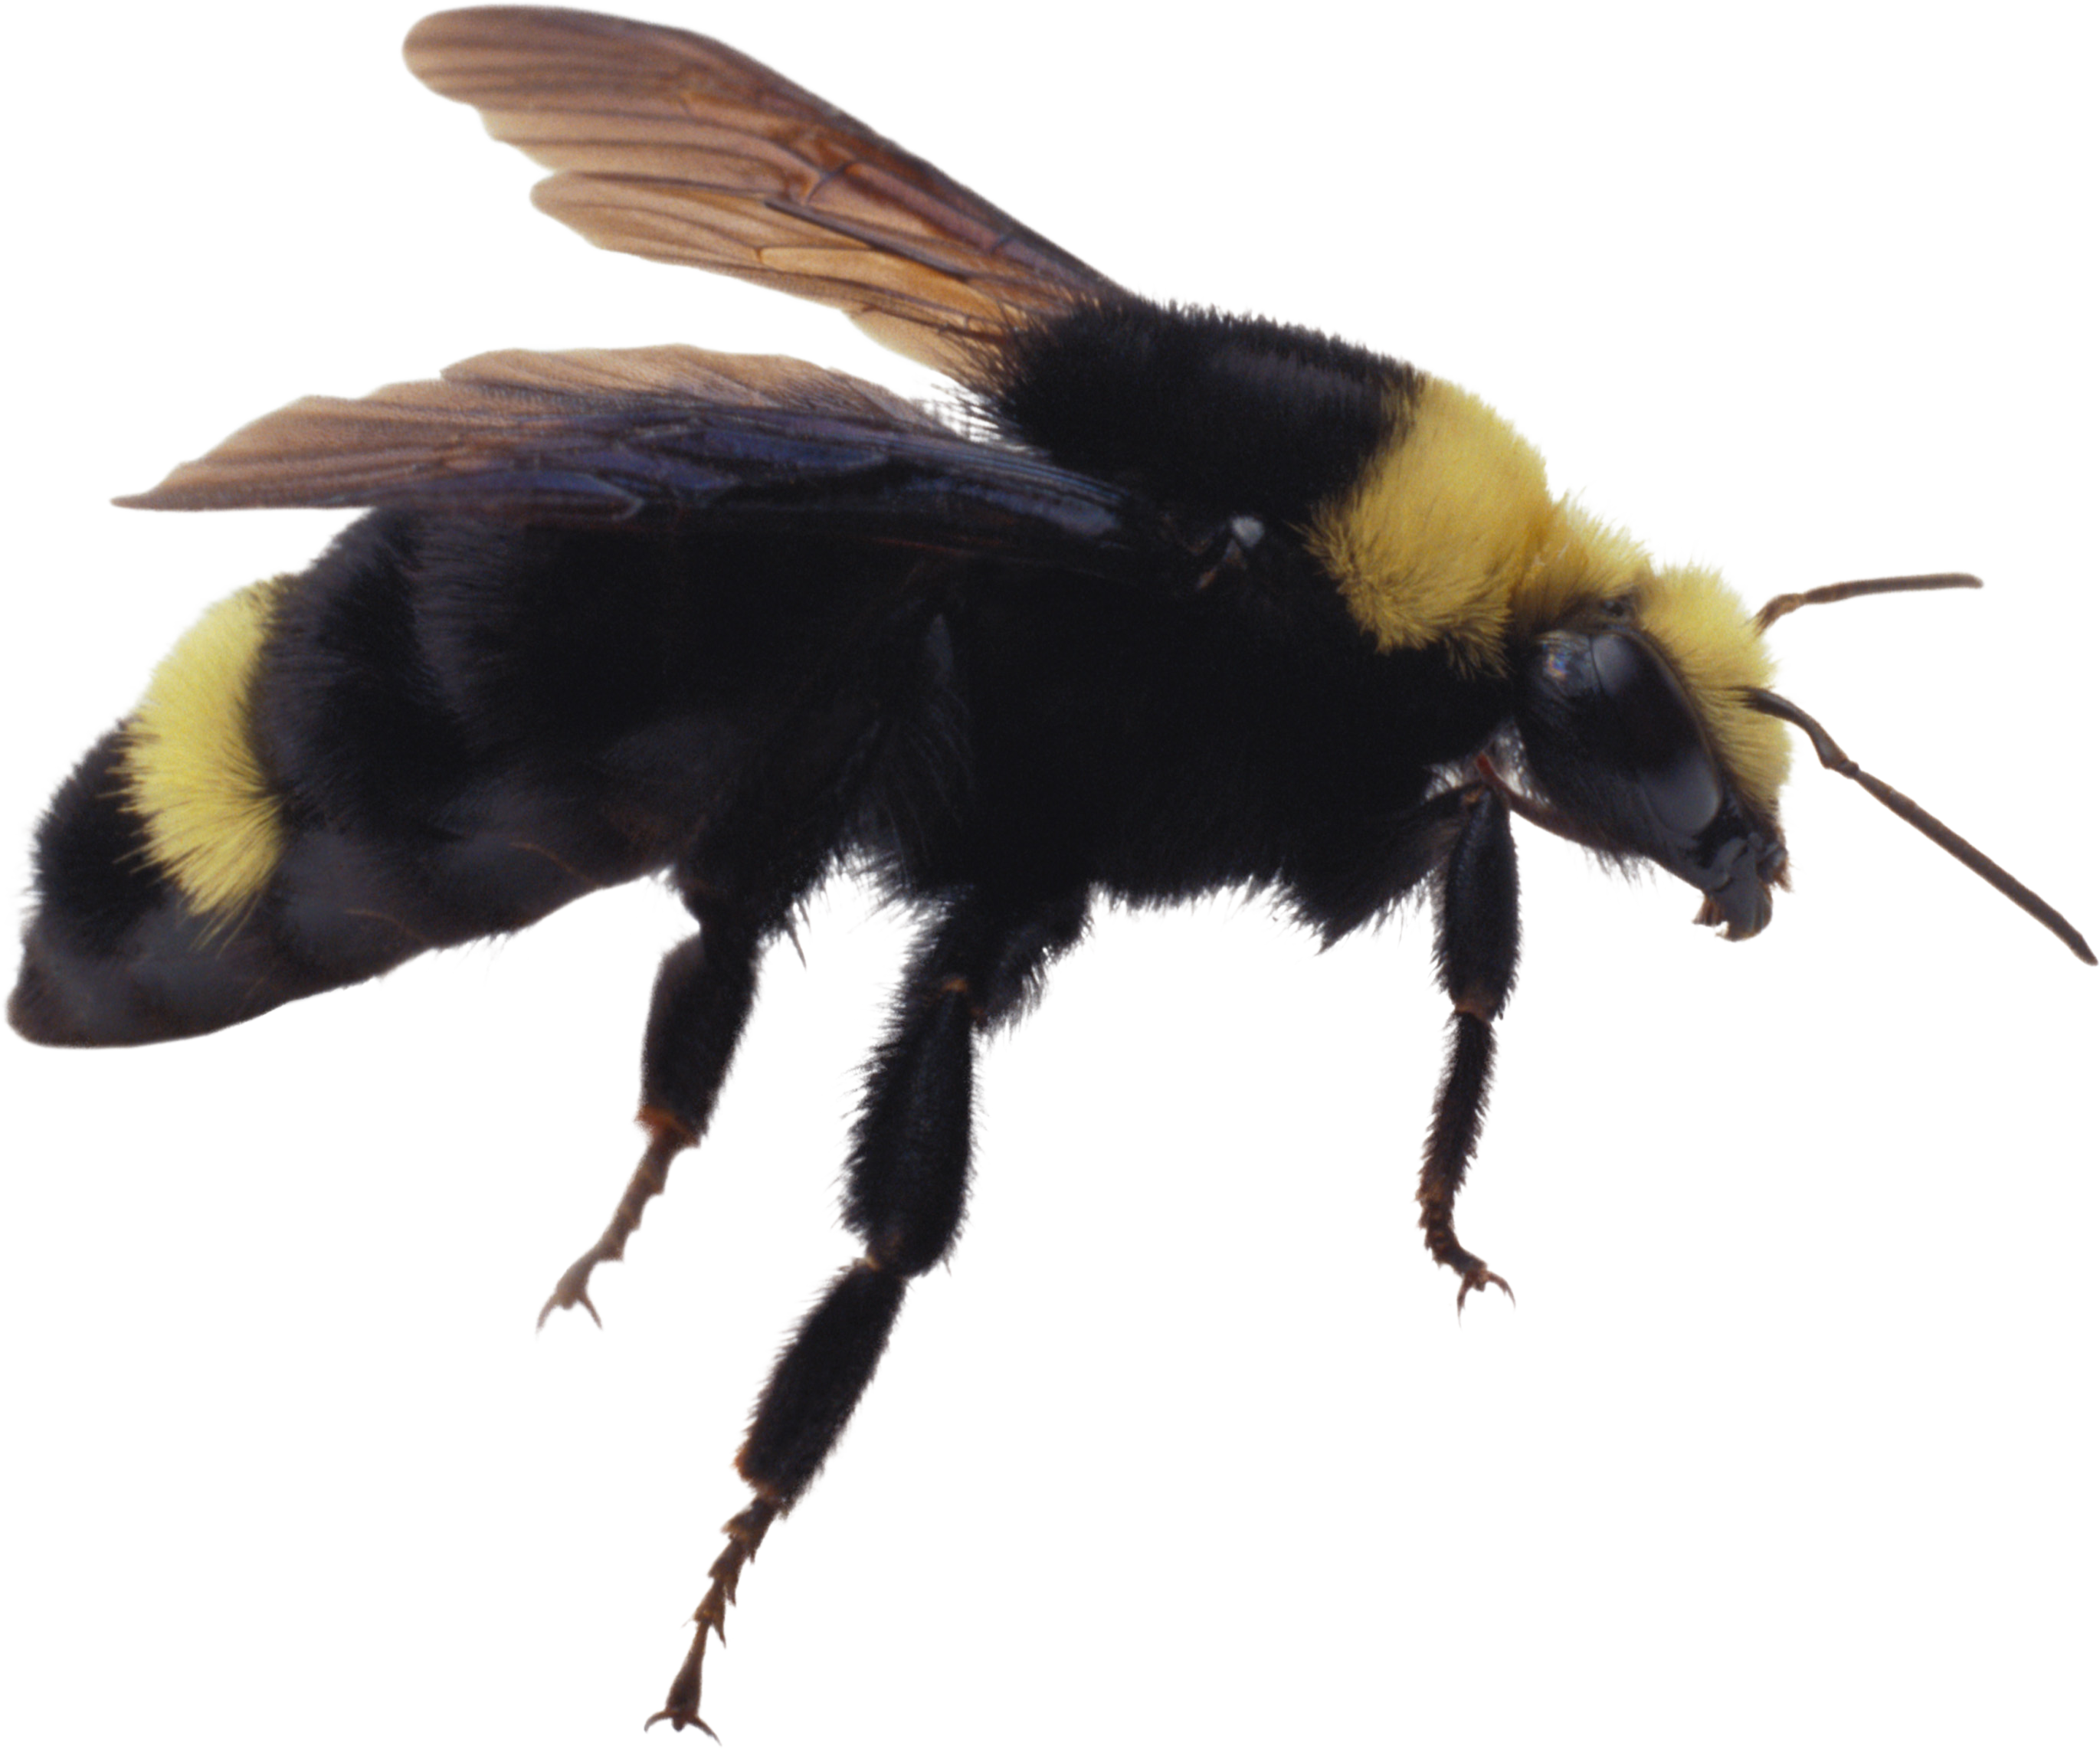 Bees transparent. Bee png image free